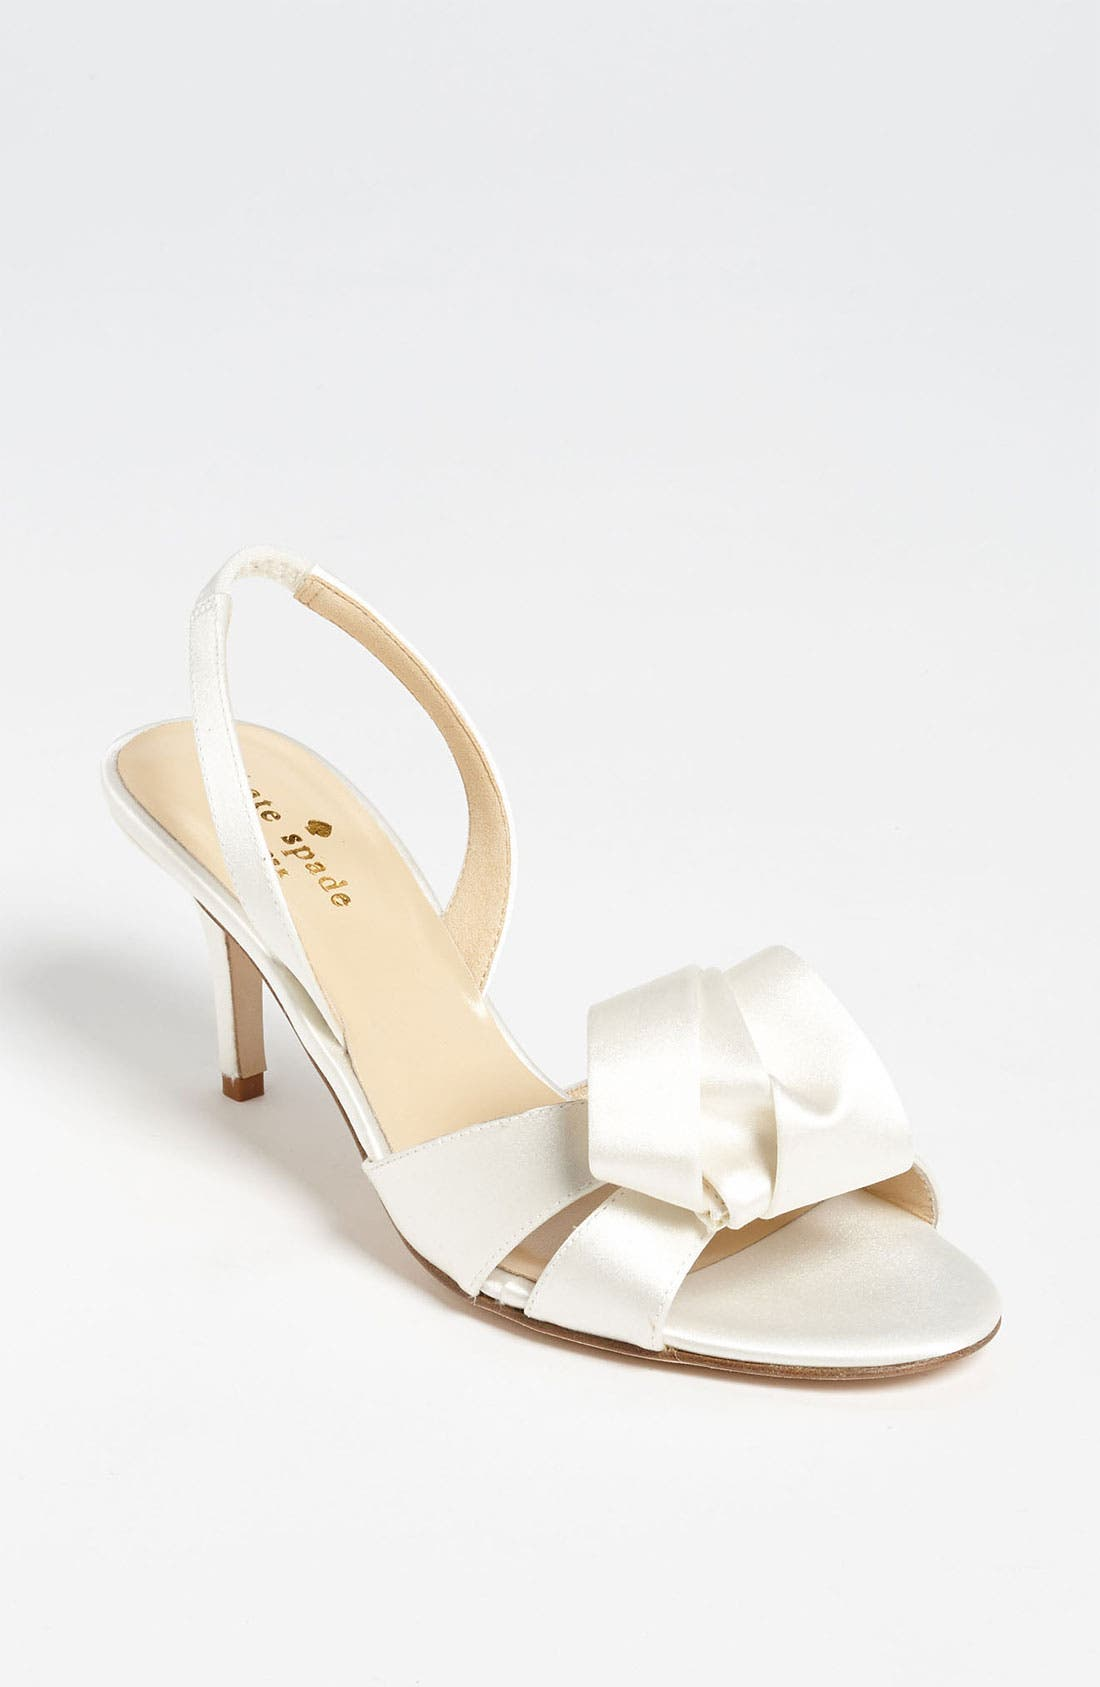 Main Image - kate spade new york 'madison' sandal (Women)